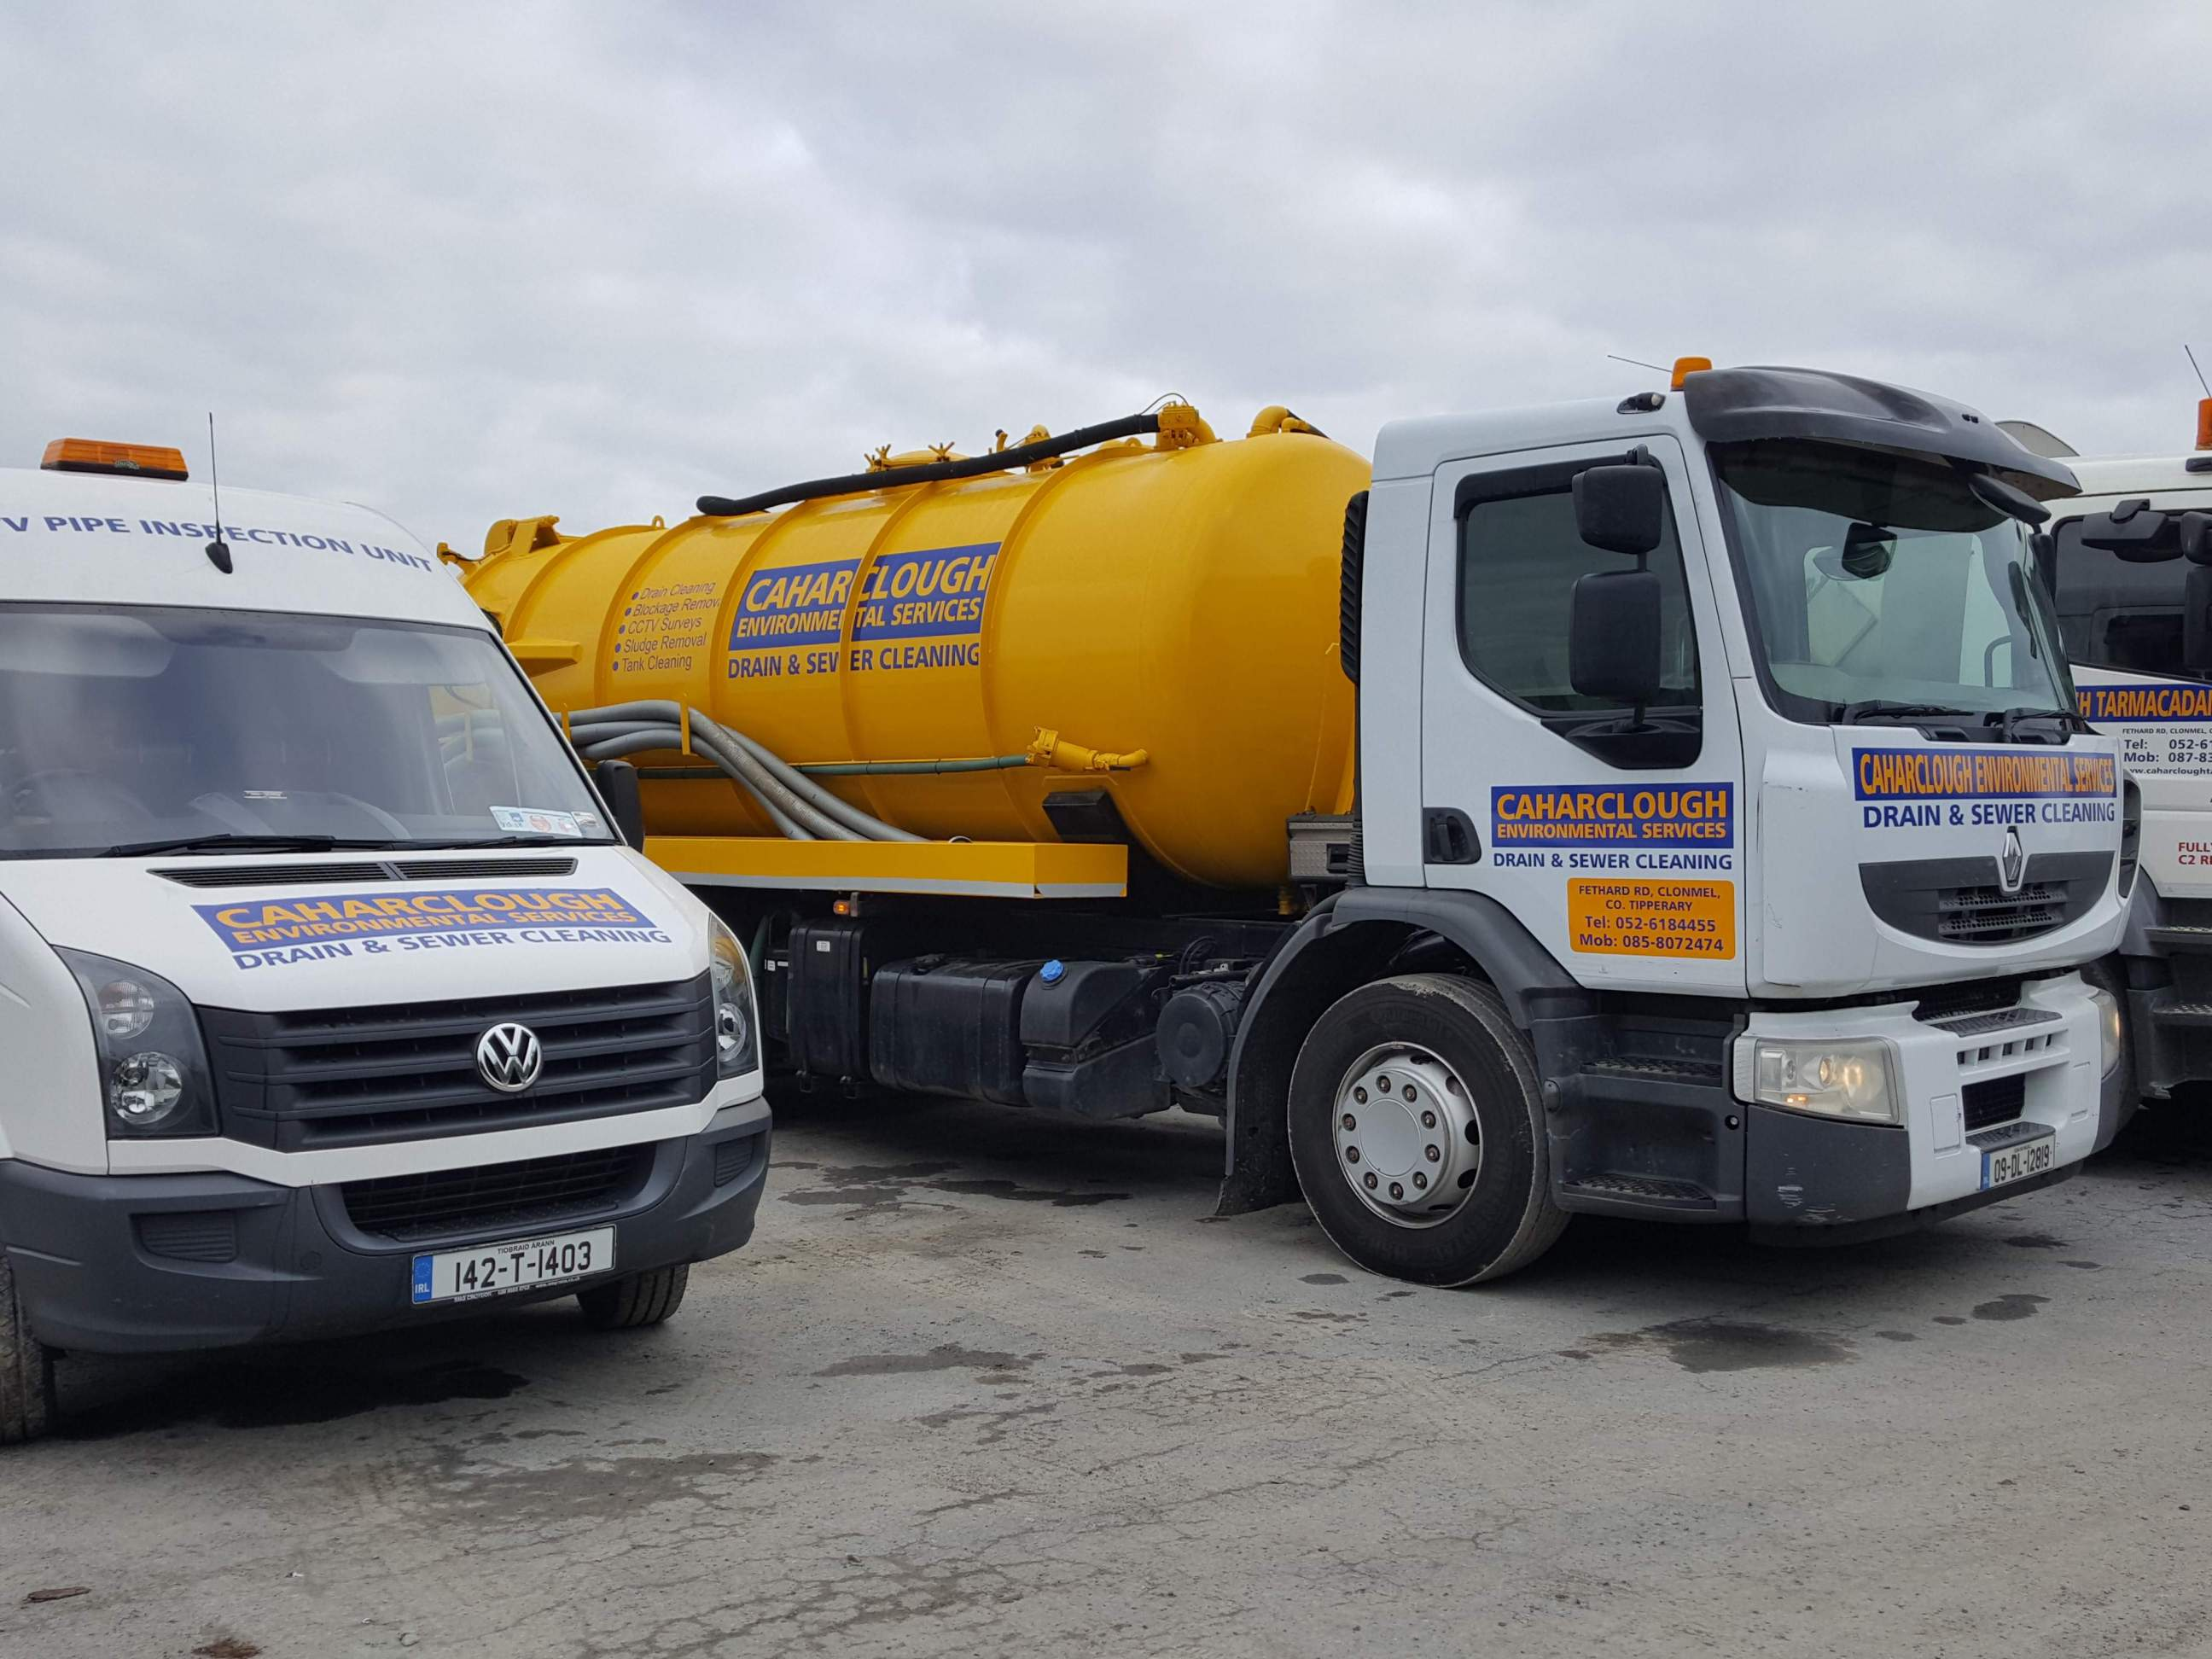 Caharclough Envrionmental Services Tipperary